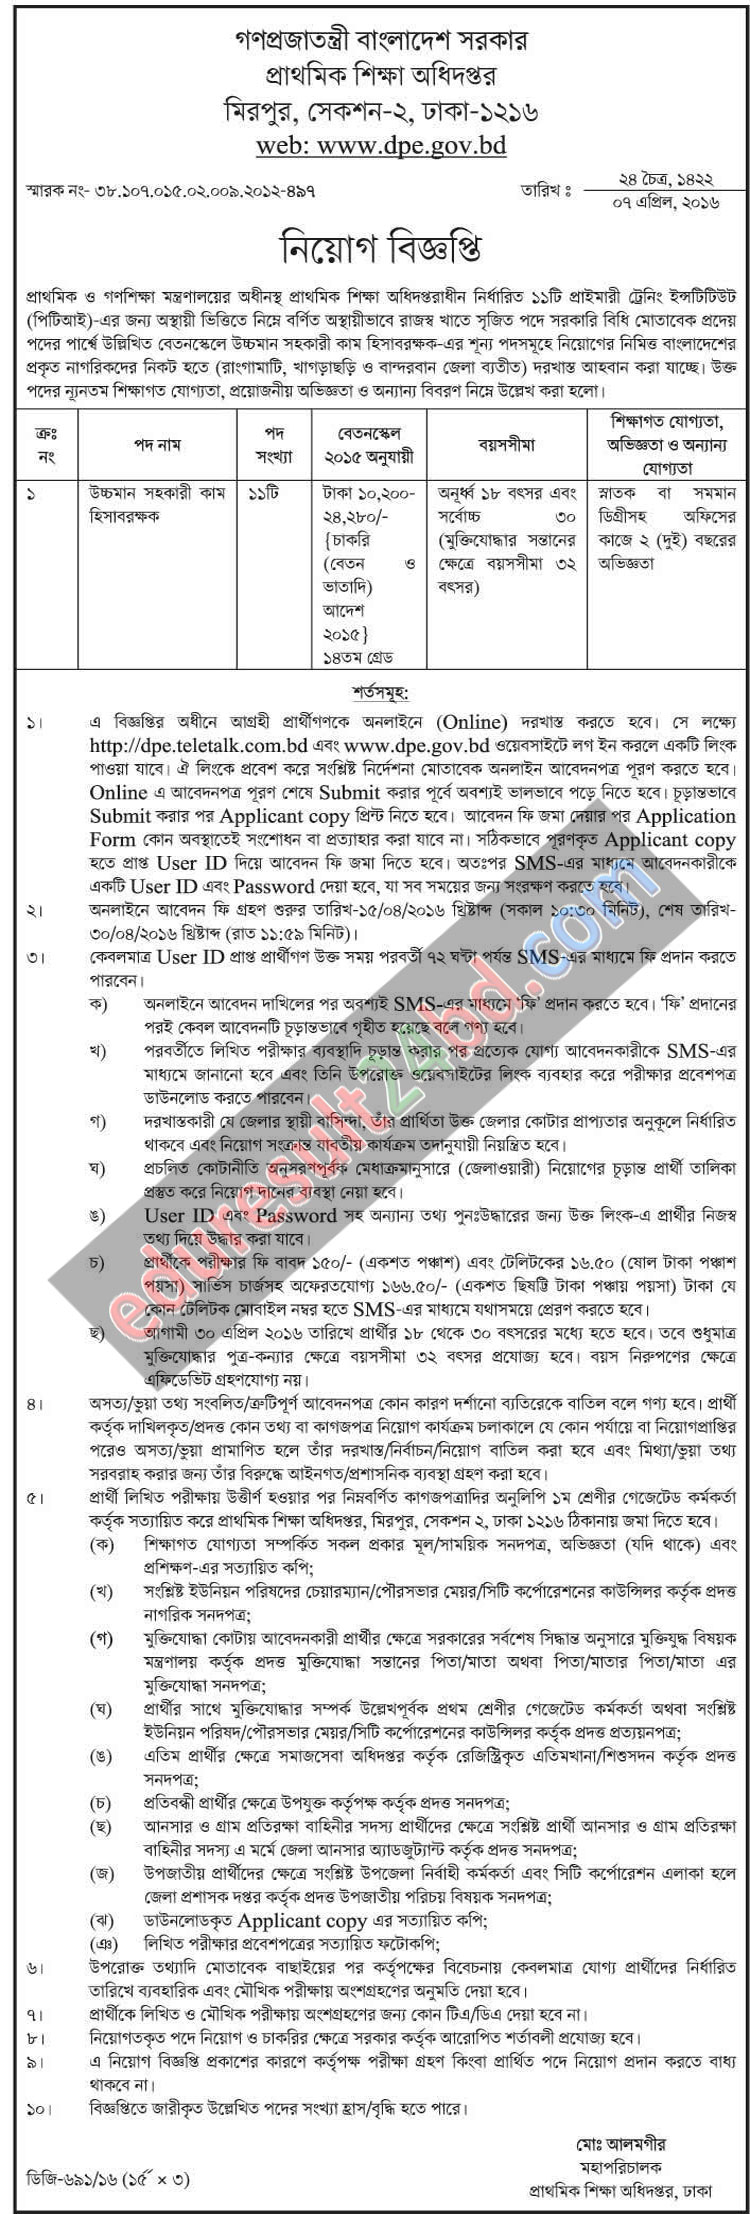 Primary Education Job Circular 2016: